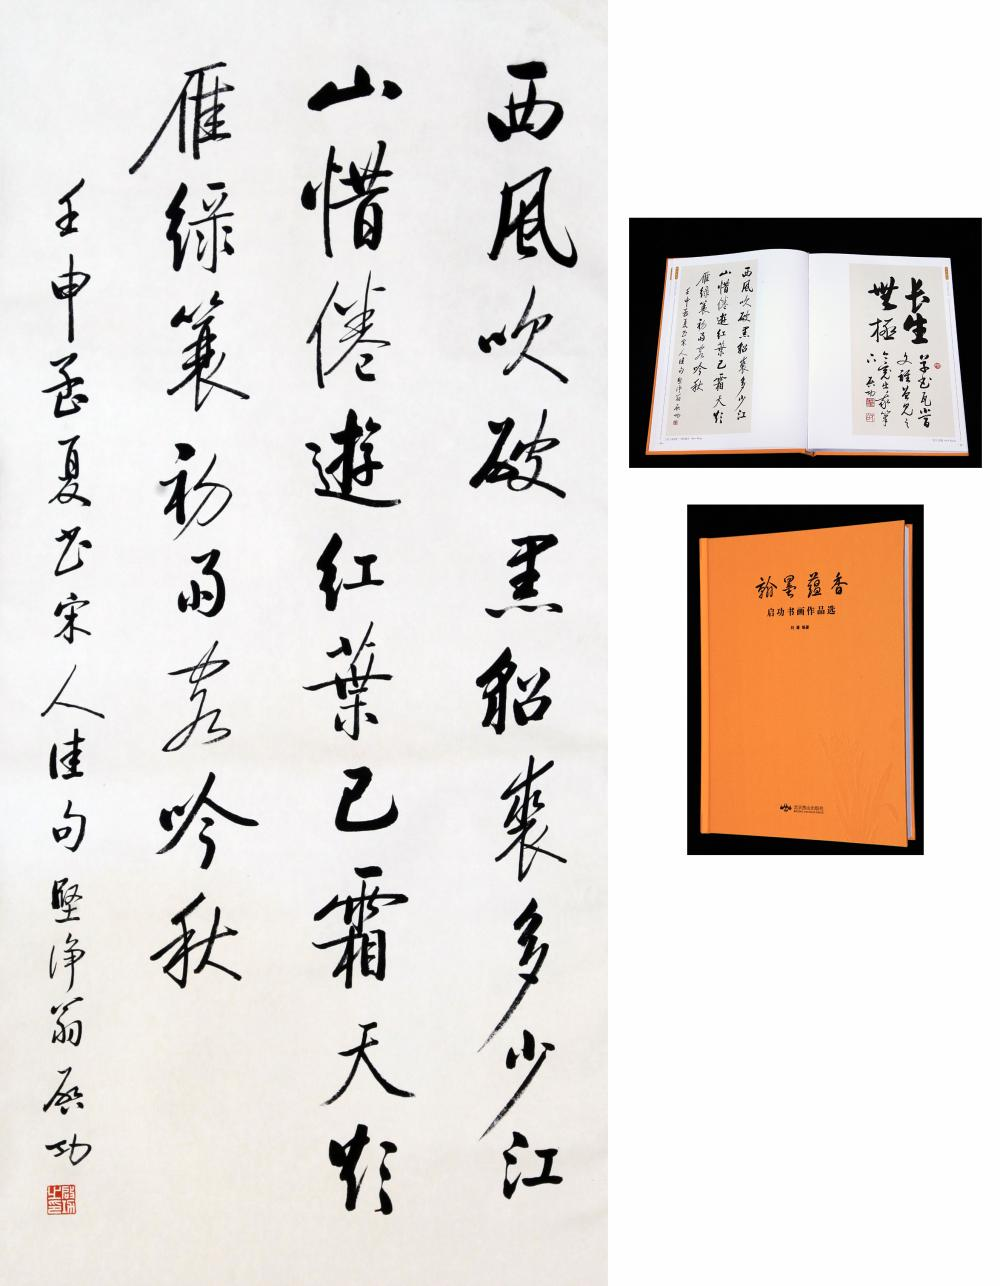 CHINESE CALLIGRAPHY OF SONG BOREN'S POEM